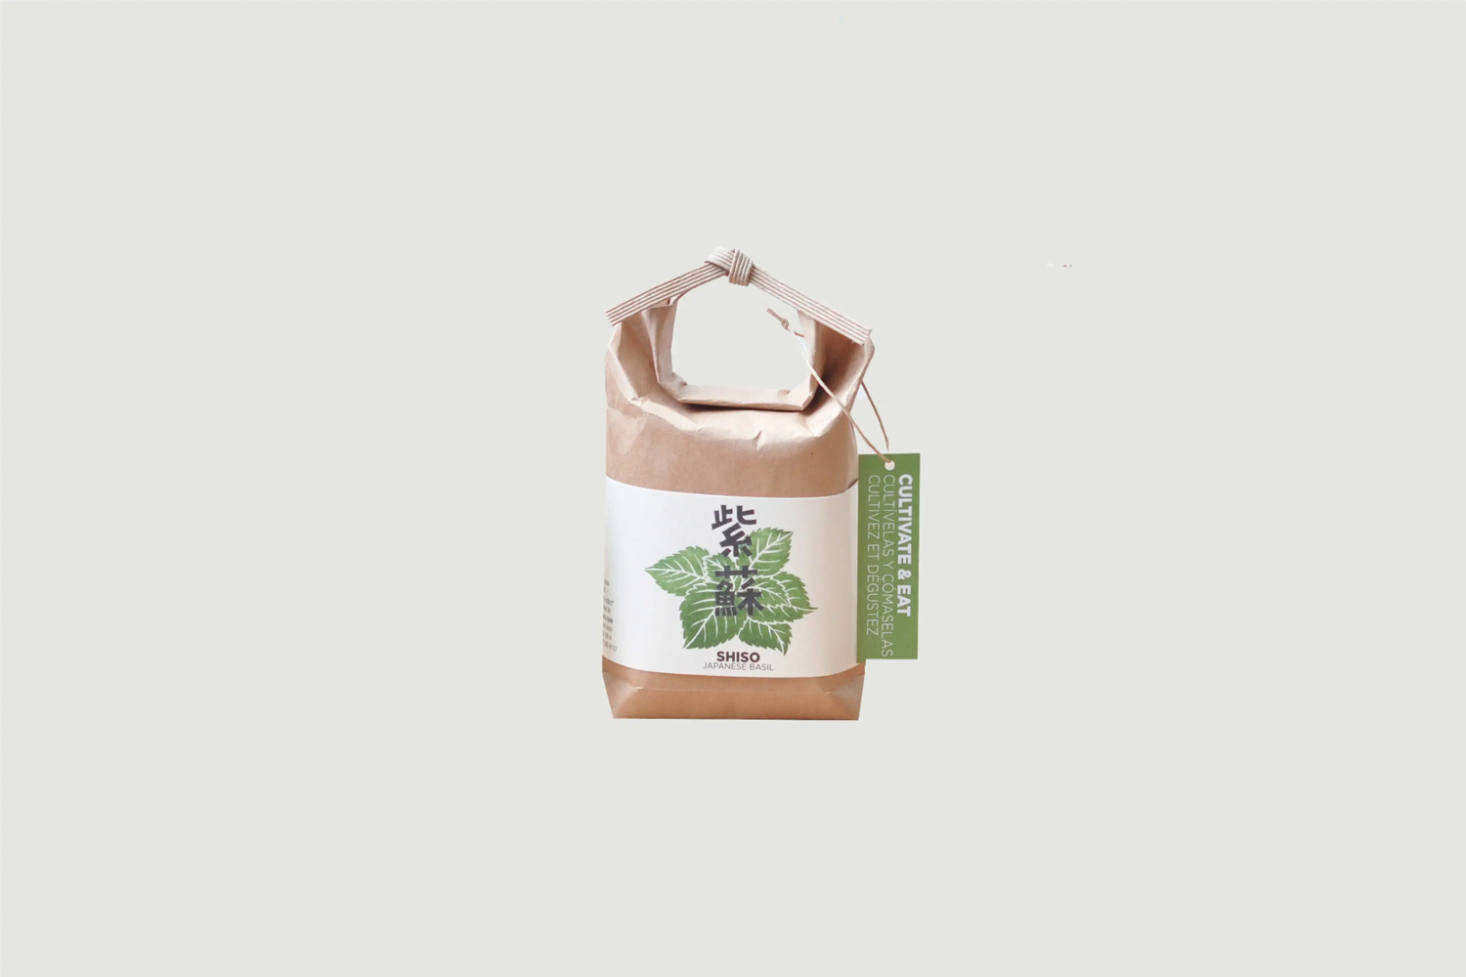 From Japanese brand Cultivate & Eat, a Mini Vegetable Growing Kit includes a plastic-lined paper bag modeled after a traditional rice bag, potting mix, and seeds. Shown here is the Shiso kit; also available are Wasabina greens and Hawk Claw peppers, each £7.99 each from Paper Tiger in the UK.